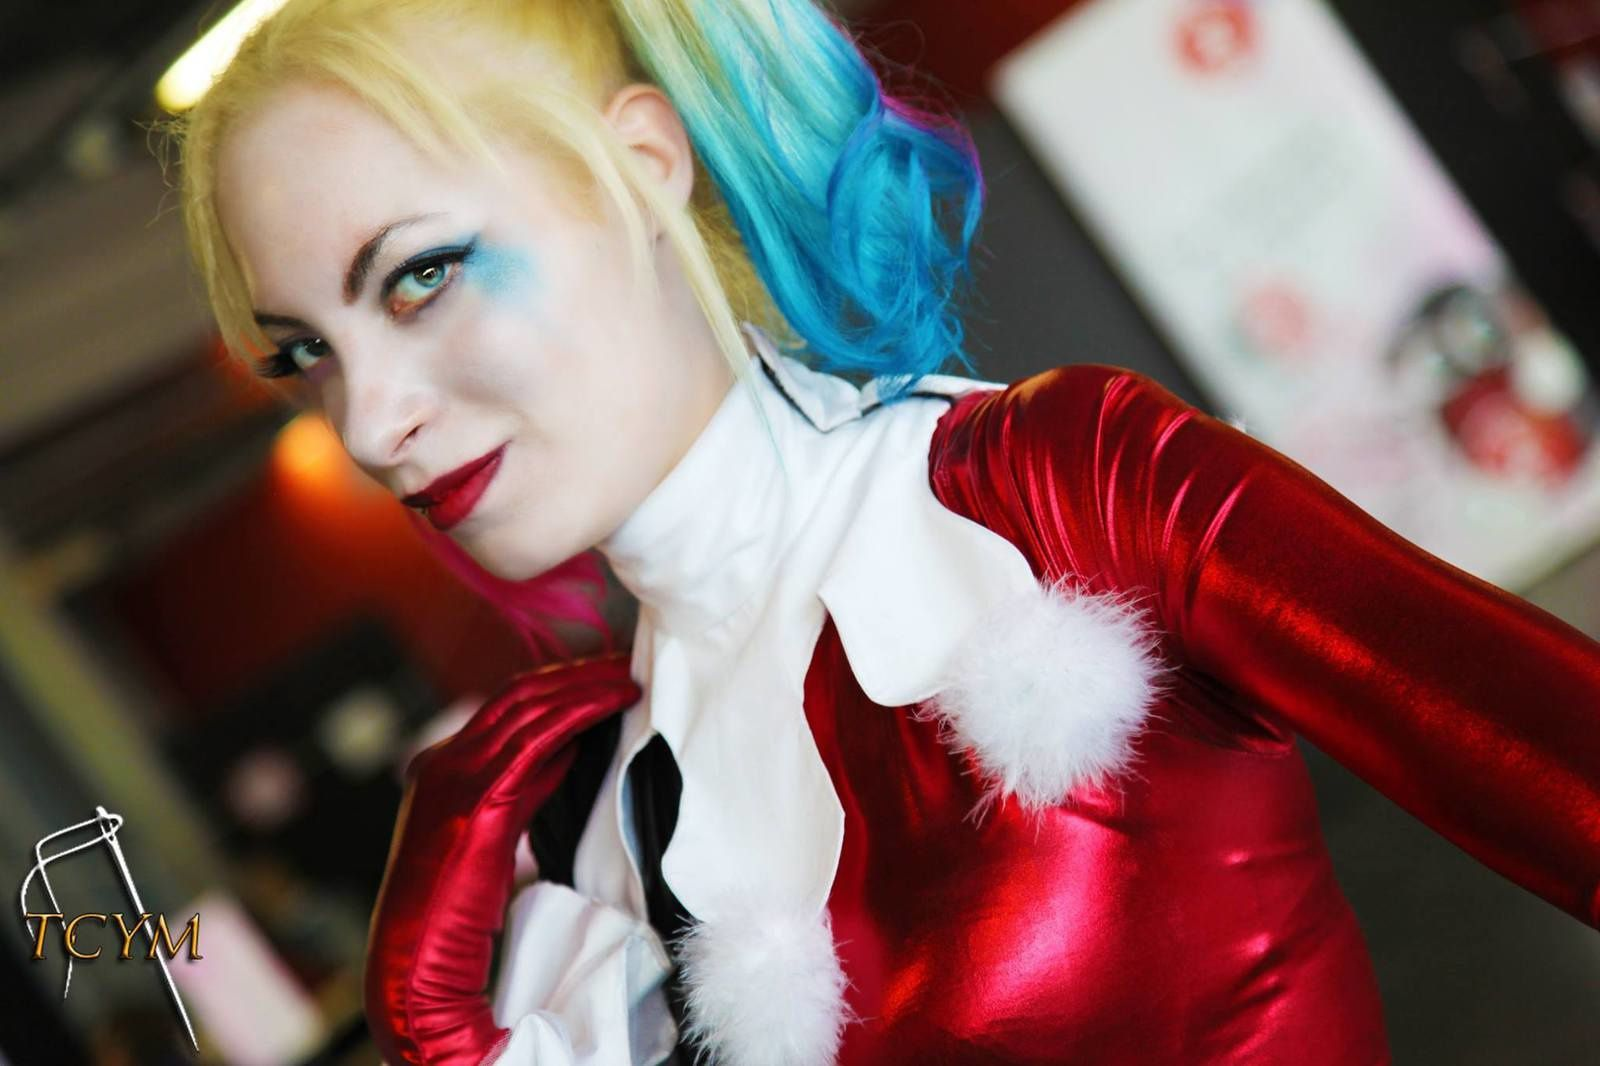 Parle-moi Cosplay #193,5 :VICE Cosplay